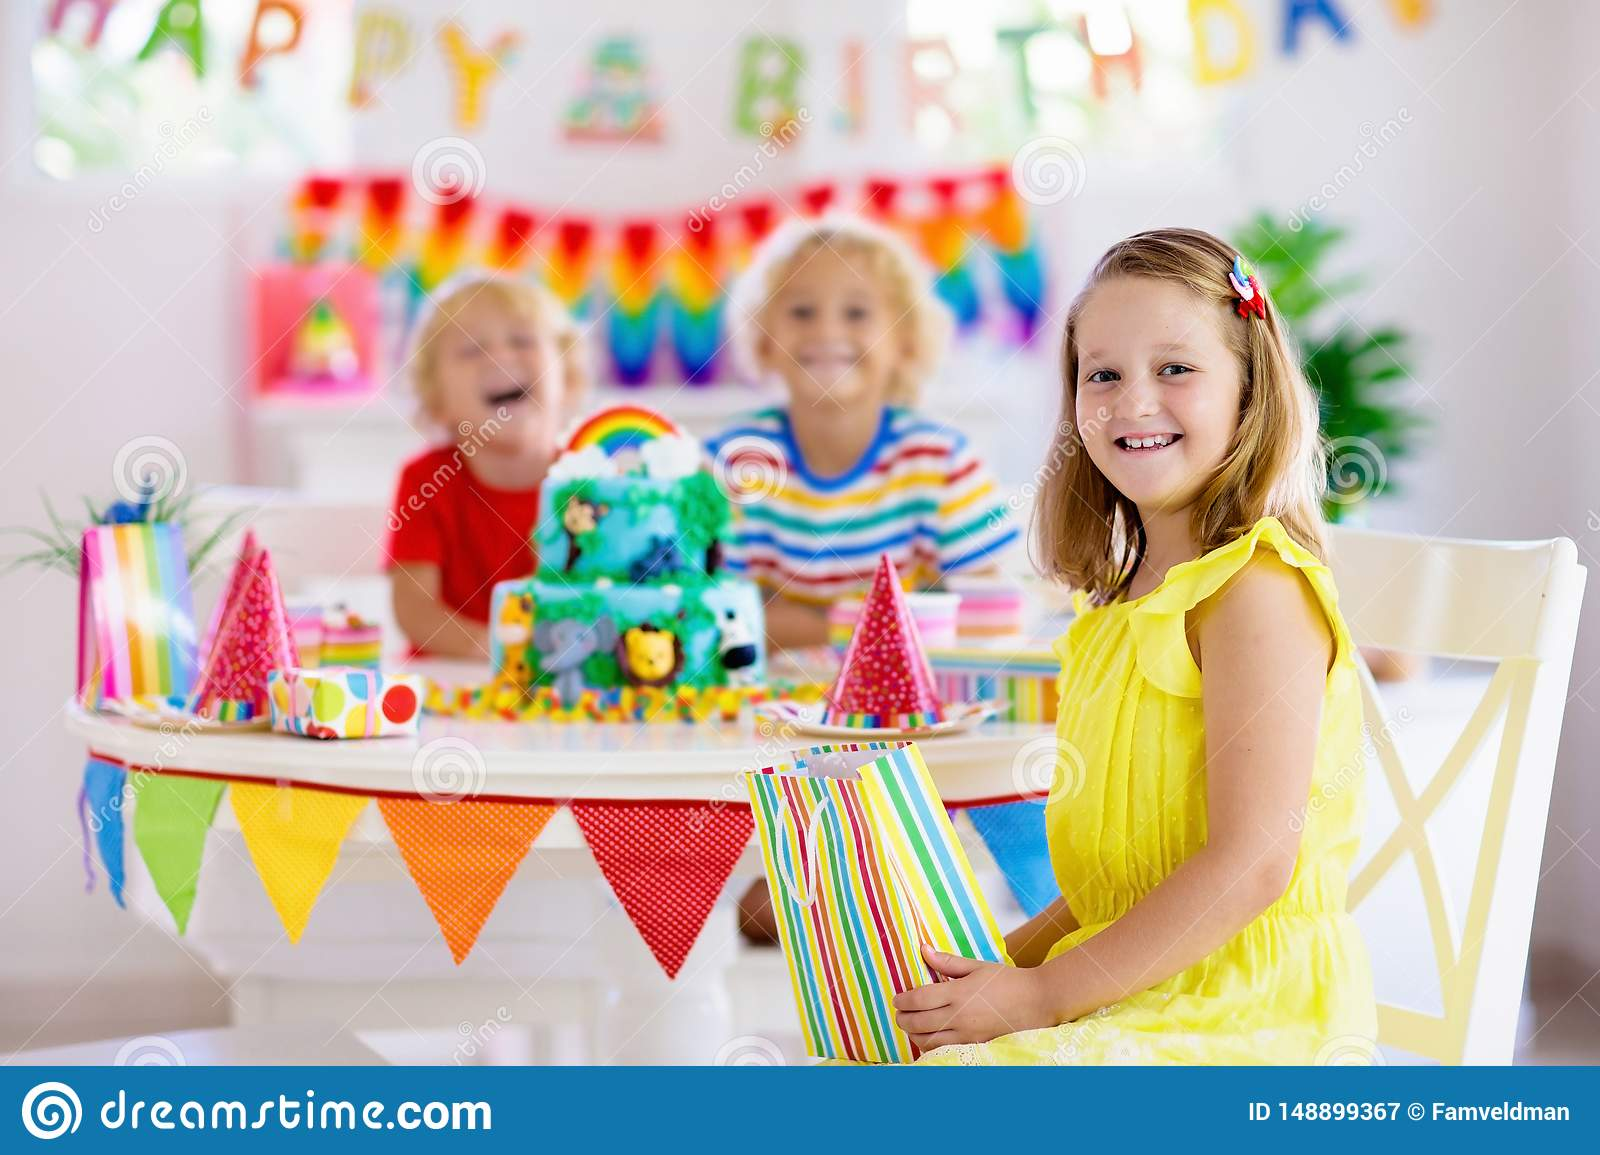 Groovy Child Birthday Party Kids Blow Candle On Cake Stock Image Image Personalised Birthday Cards Sponlily Jamesorg